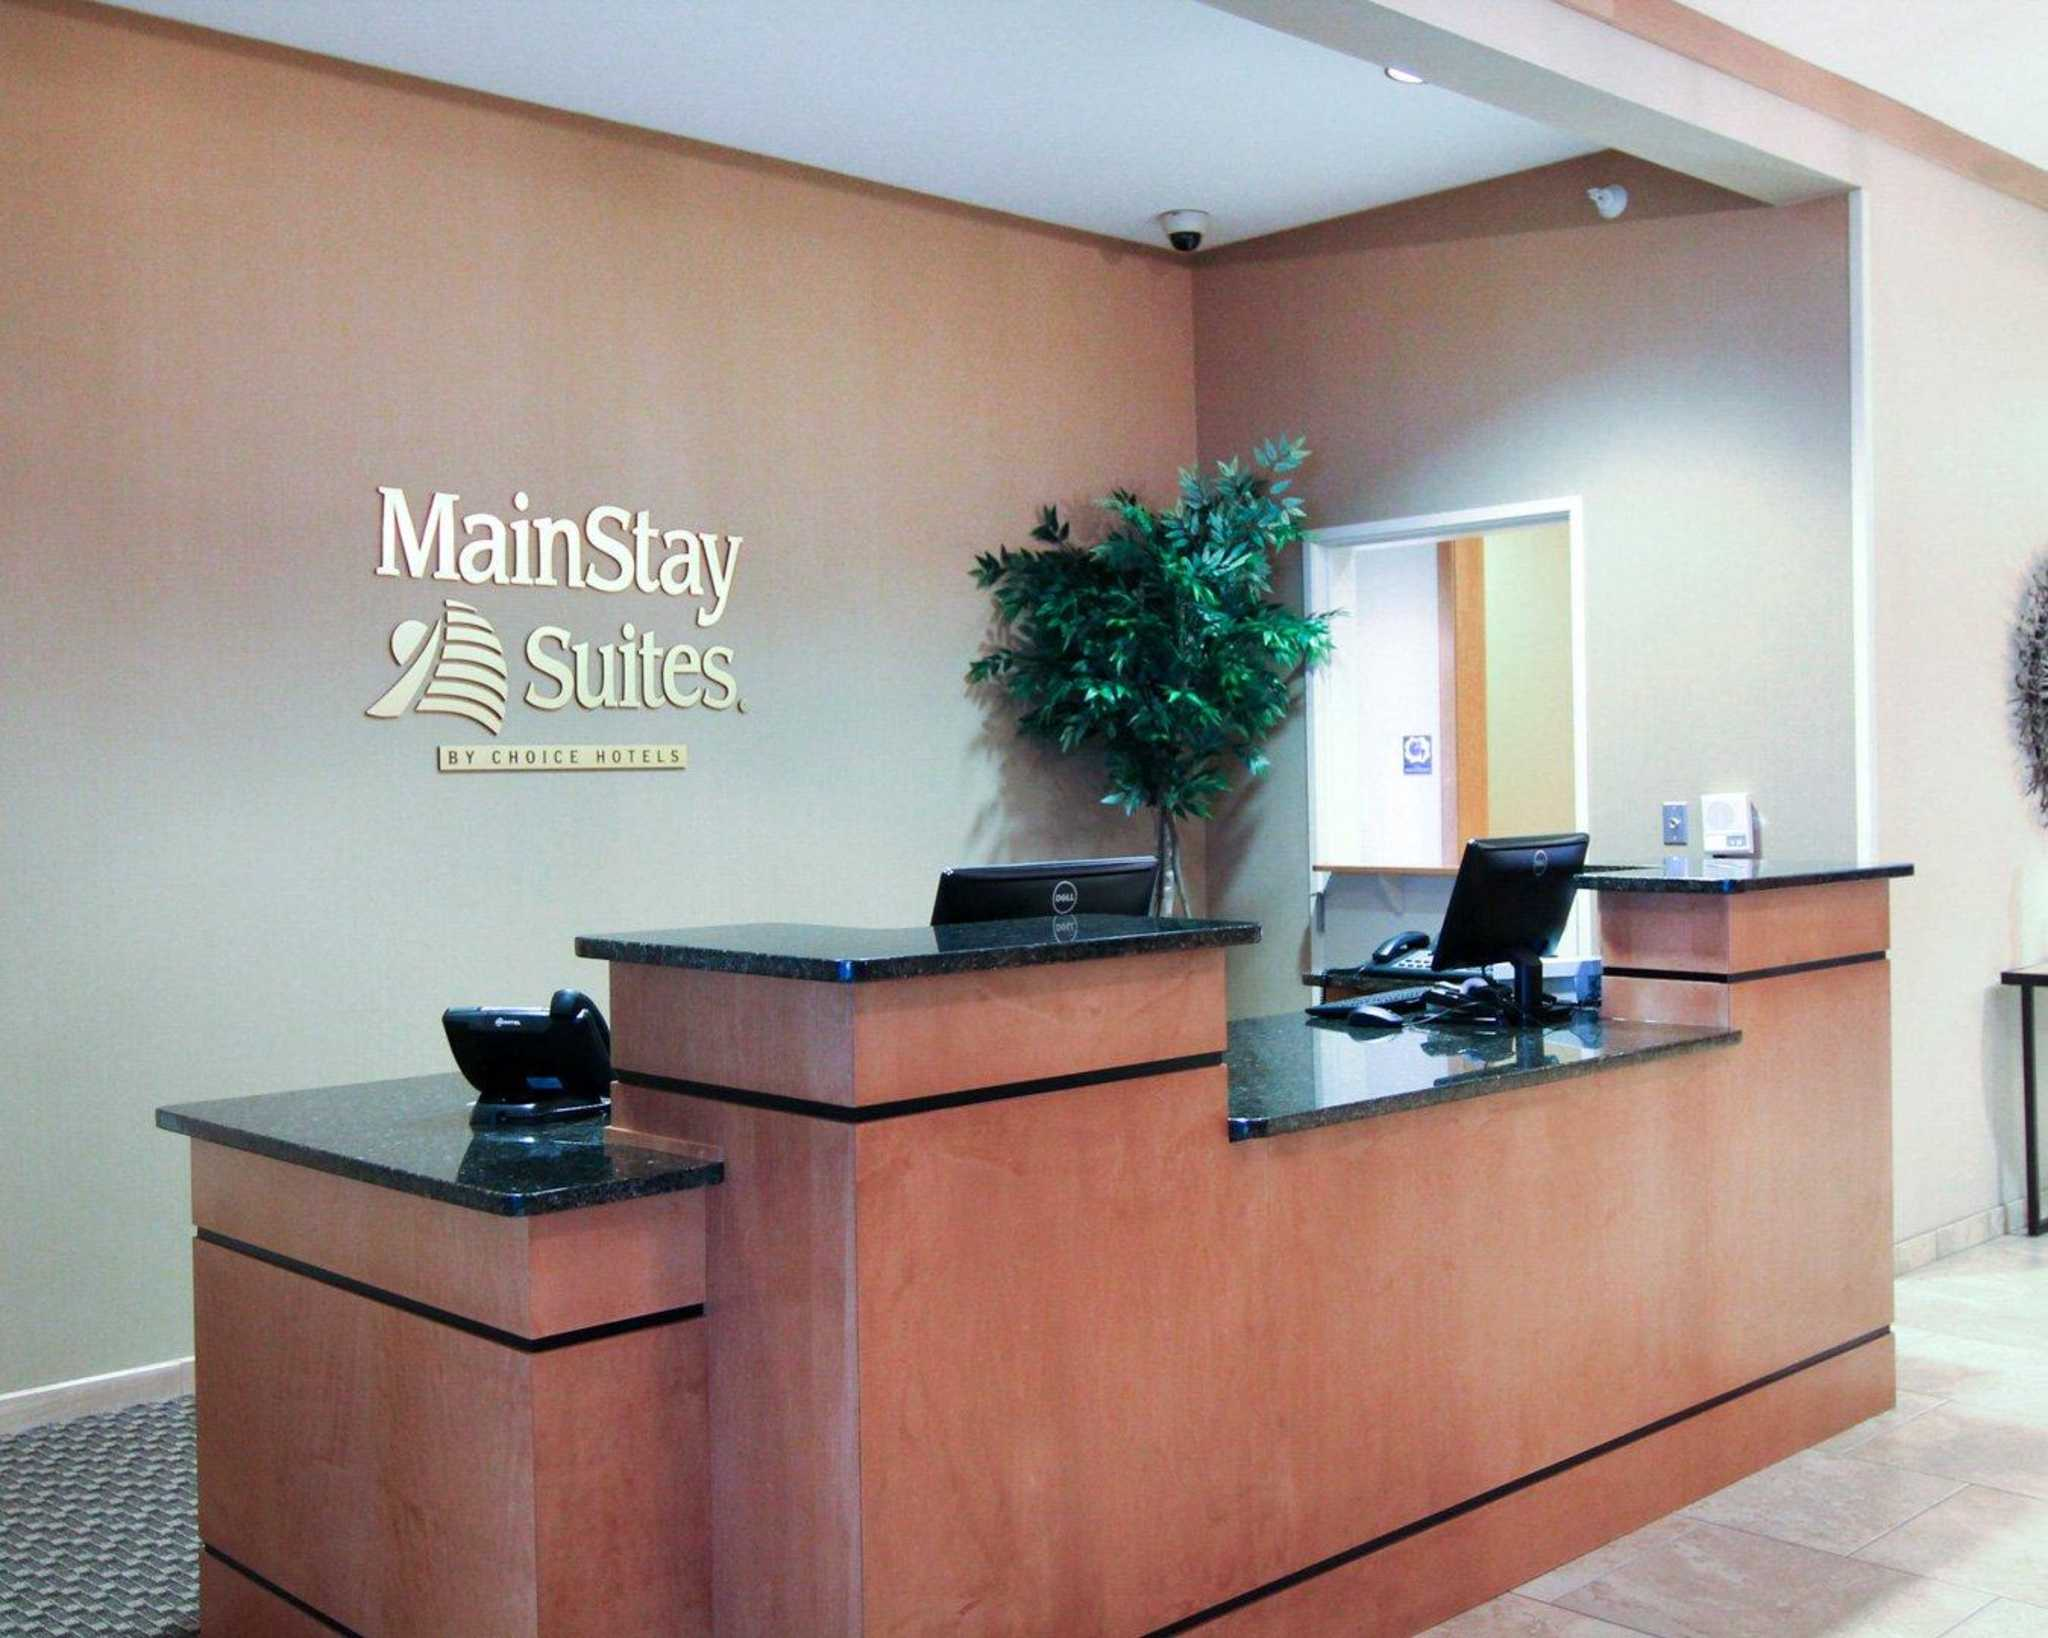 MainStay Suites Tioga image 8